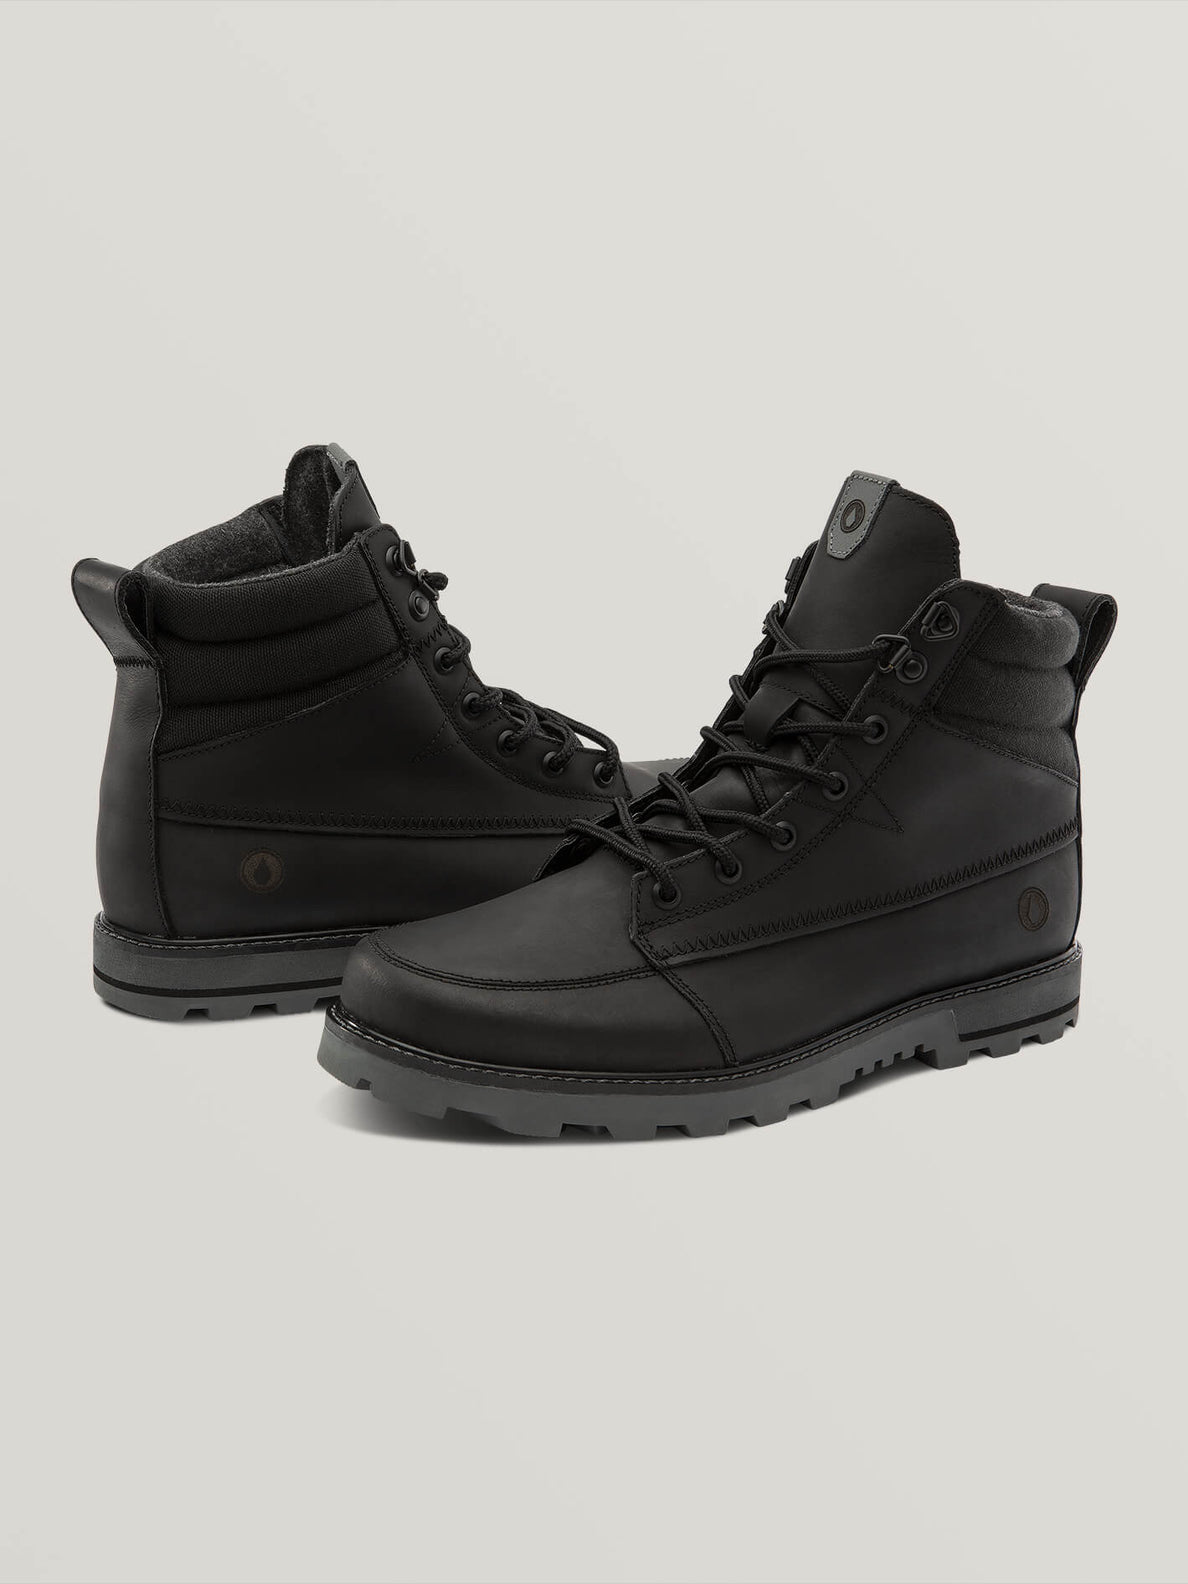 Sub Zero Boot - Black Out